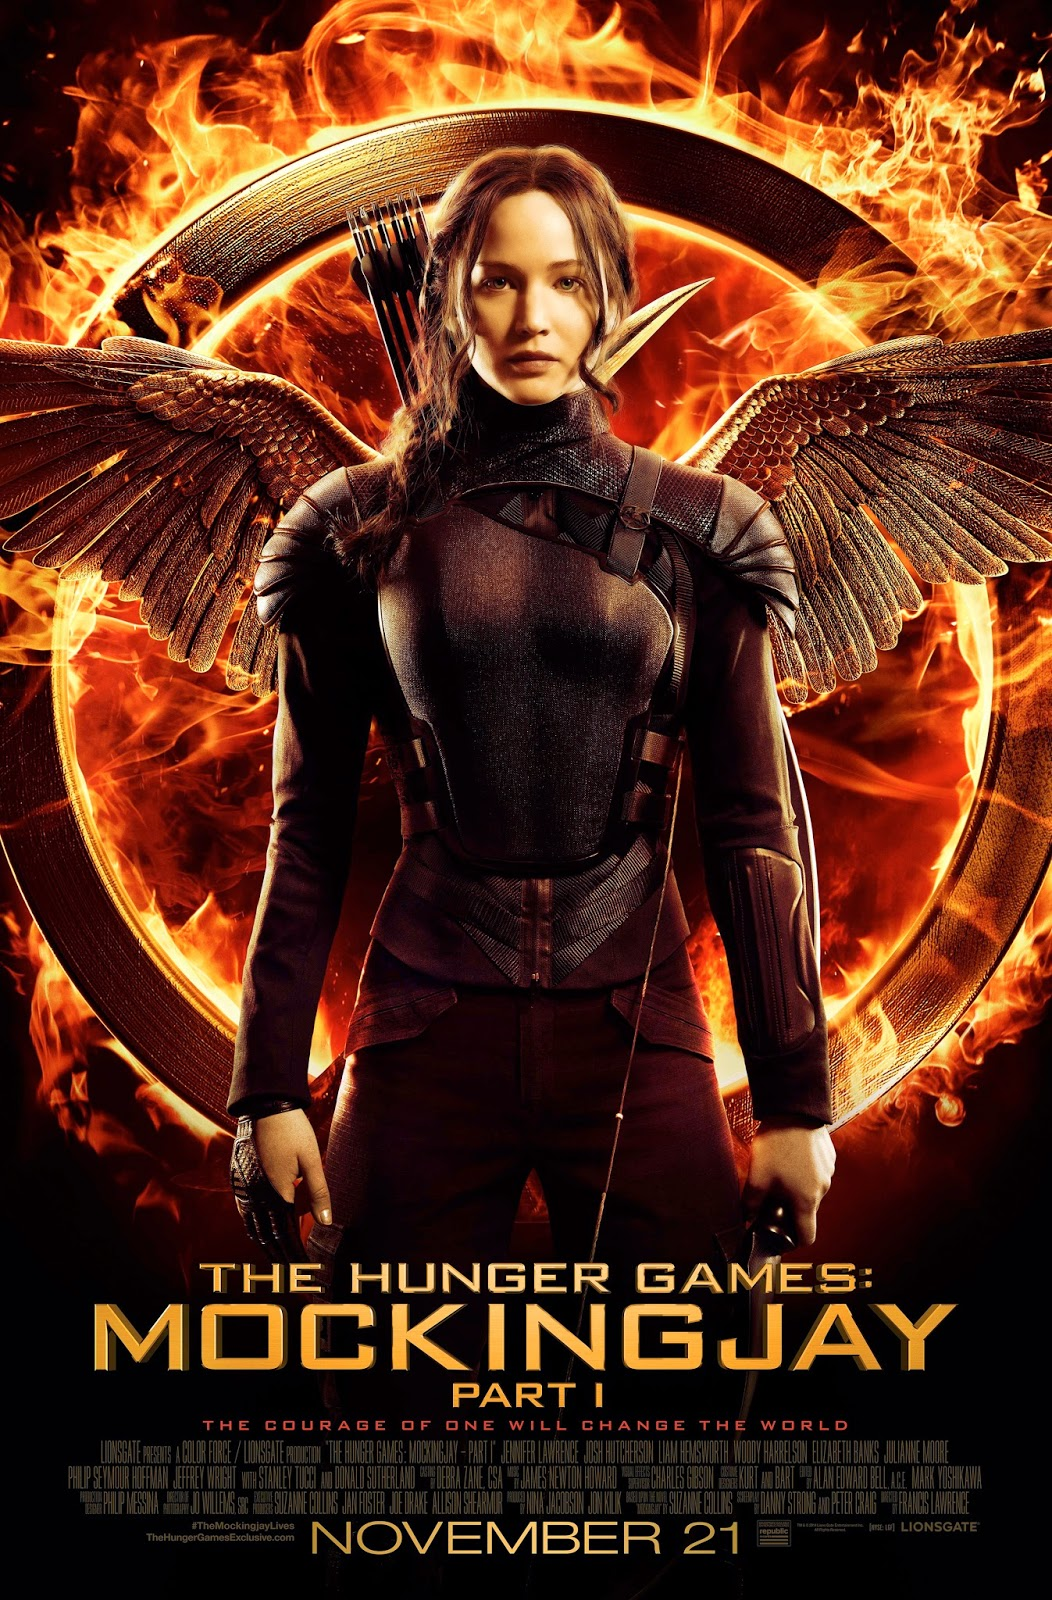 The Hunger Games: Mockingjay – Part 1 (2014) ταινιες online seires xrysoi greek subs